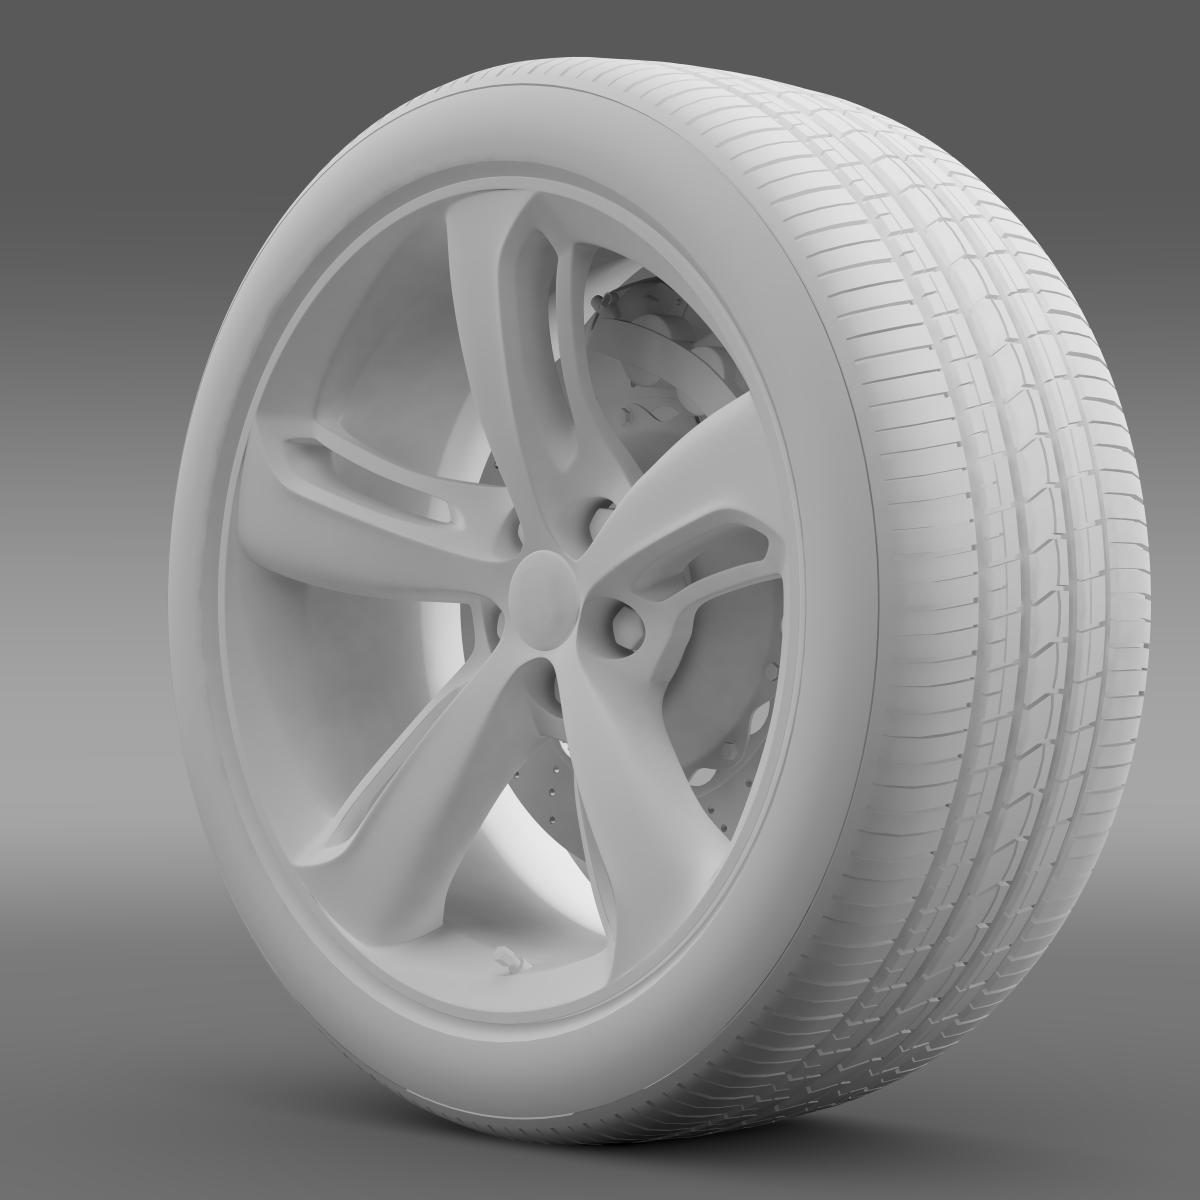 bentley continental gt speed 2015 wheel 3d model 3ds max fbx c4d lwo ma mb hrc xsi obj 210585